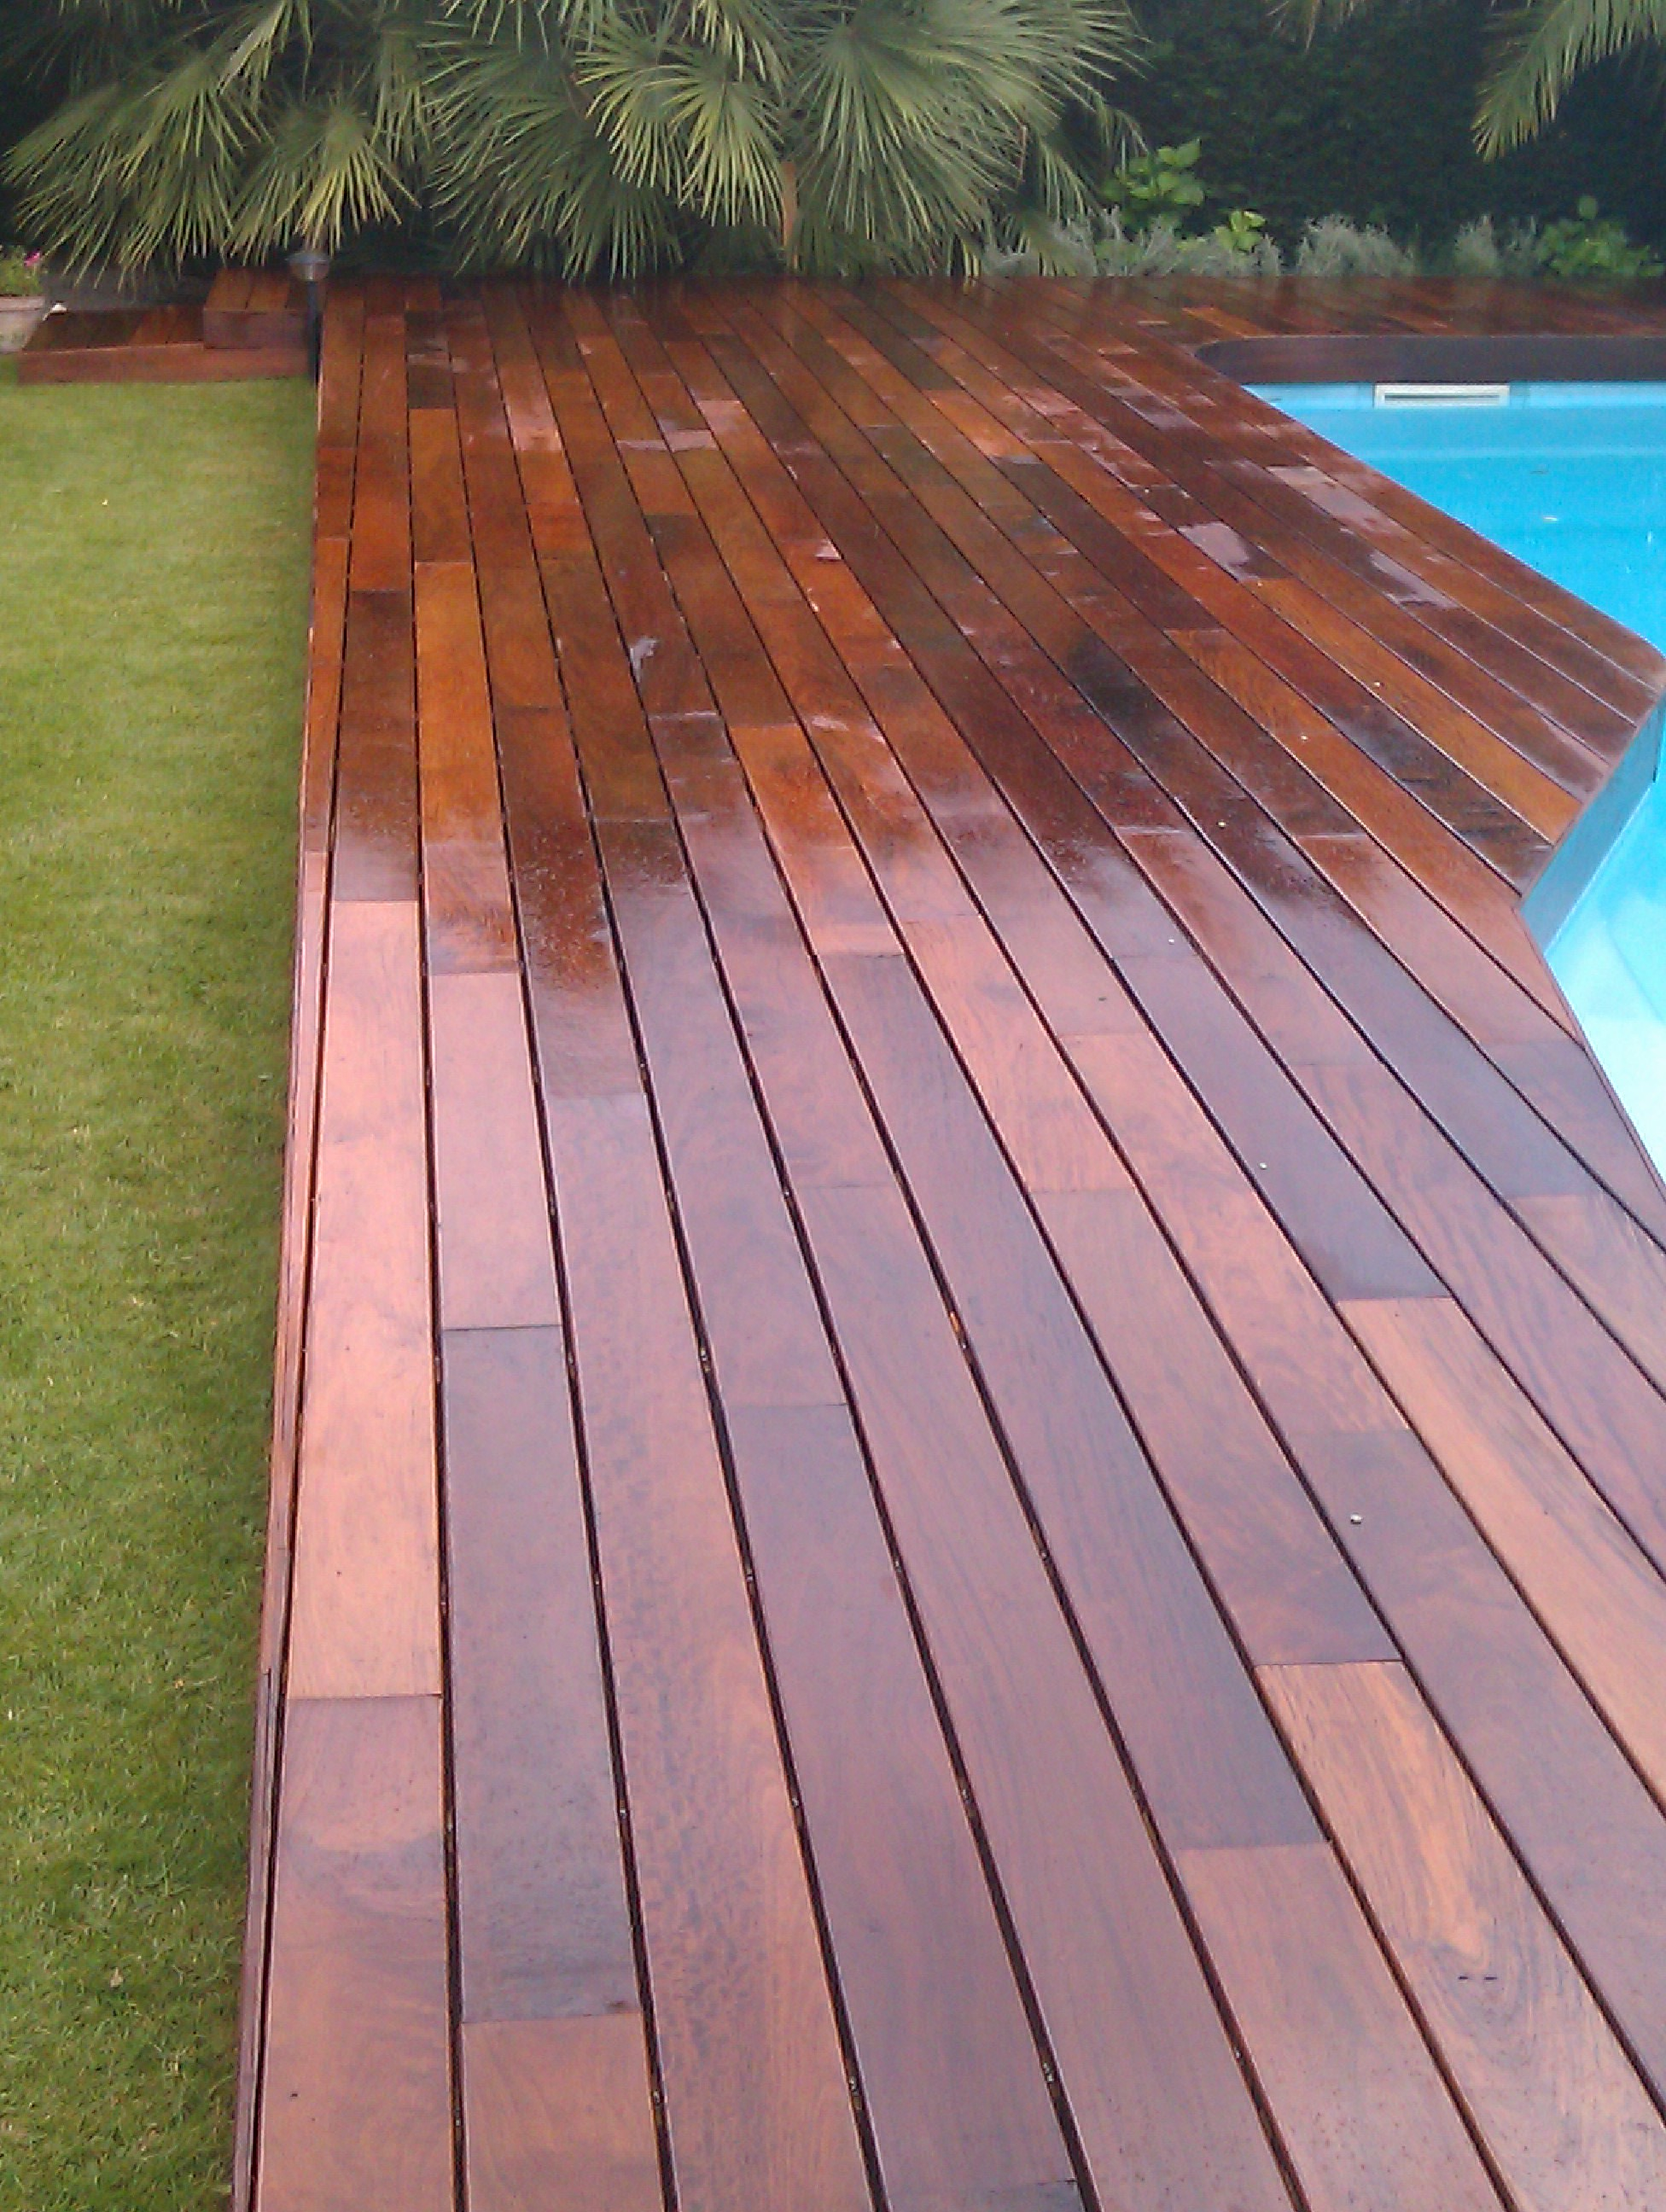 tarima grapa vista de ipe en jardin y piscina - Topmadera